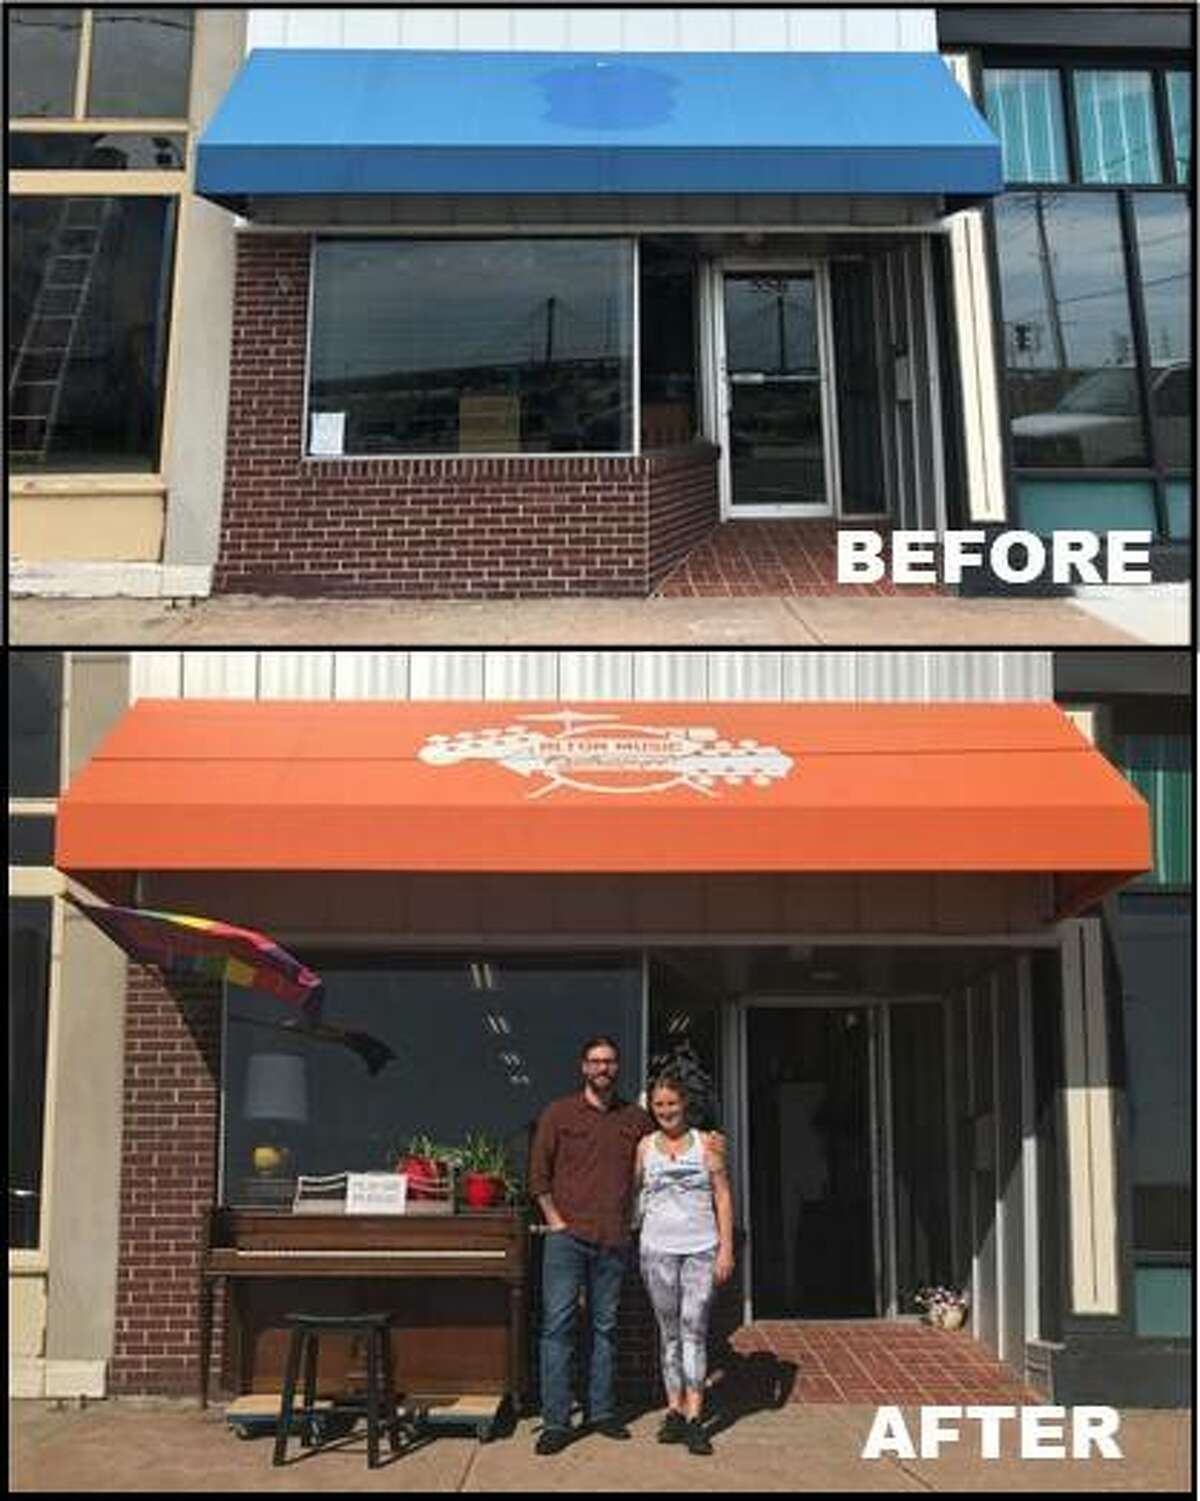 Before and after photos show how Alton Music Exchange used its Alton Main Street Façade Improvement Grant to update its storefront at 556 E. Broadway. Pictured outside the building are Jared and Jenny Unfried, owners of Alton Music Exchange. The application deadline is Aug. 27.